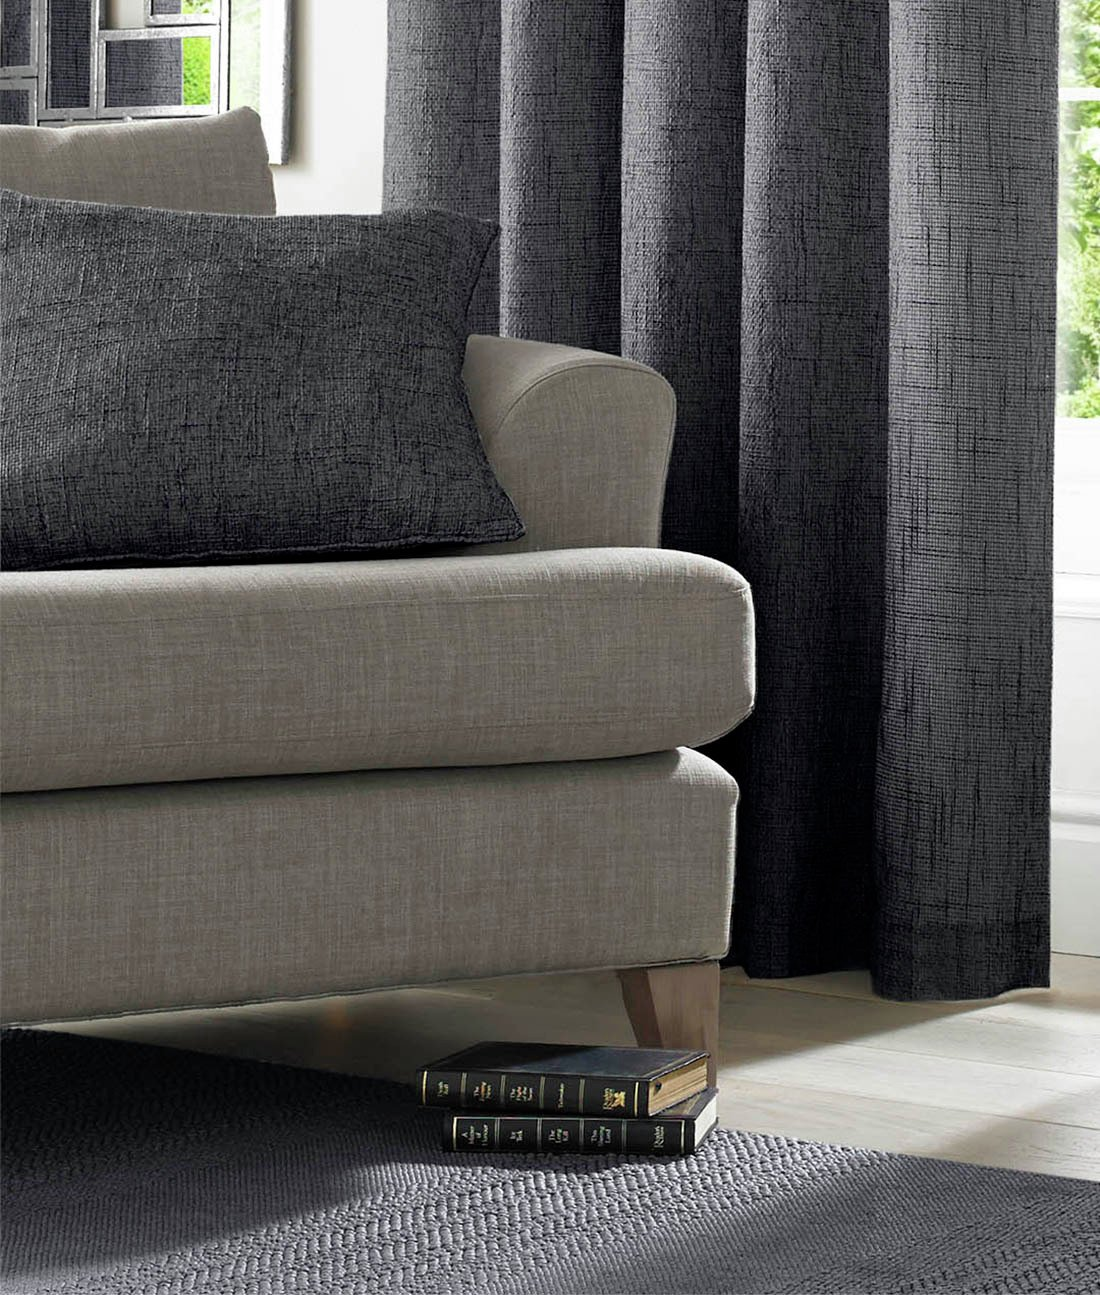 Academy Cushion Cover - Charcoal.